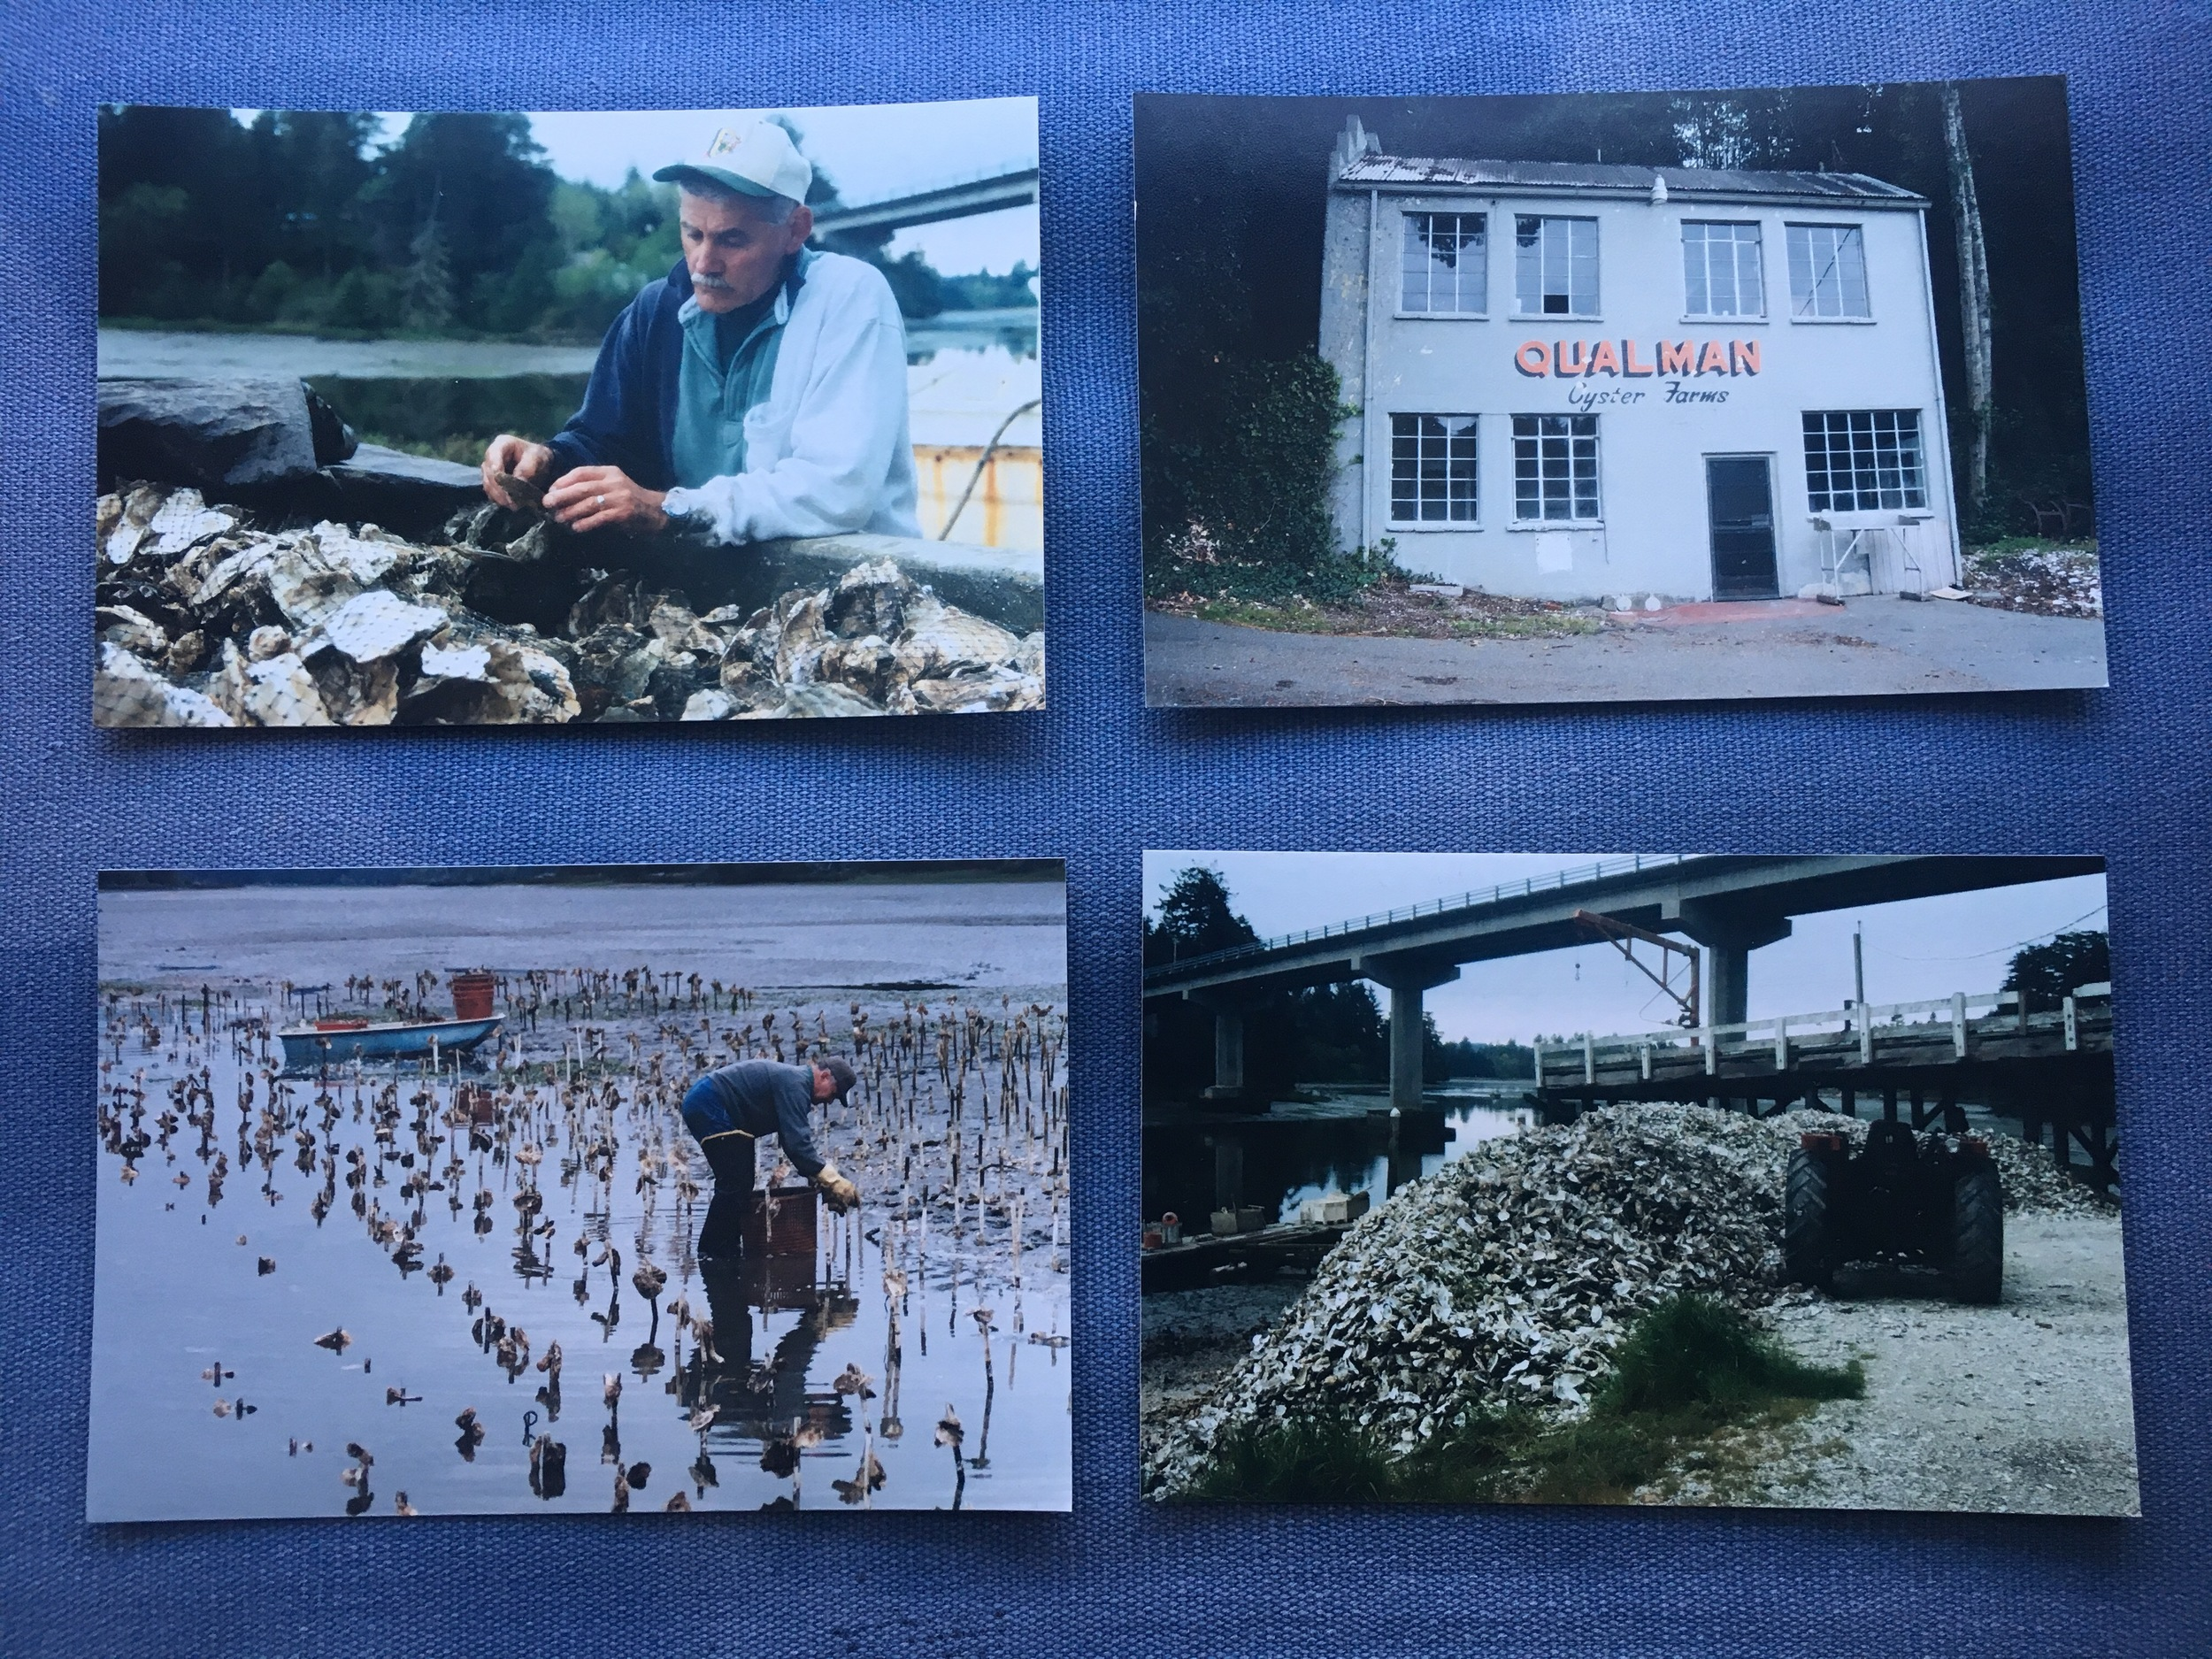 Qualman Oysters over the years